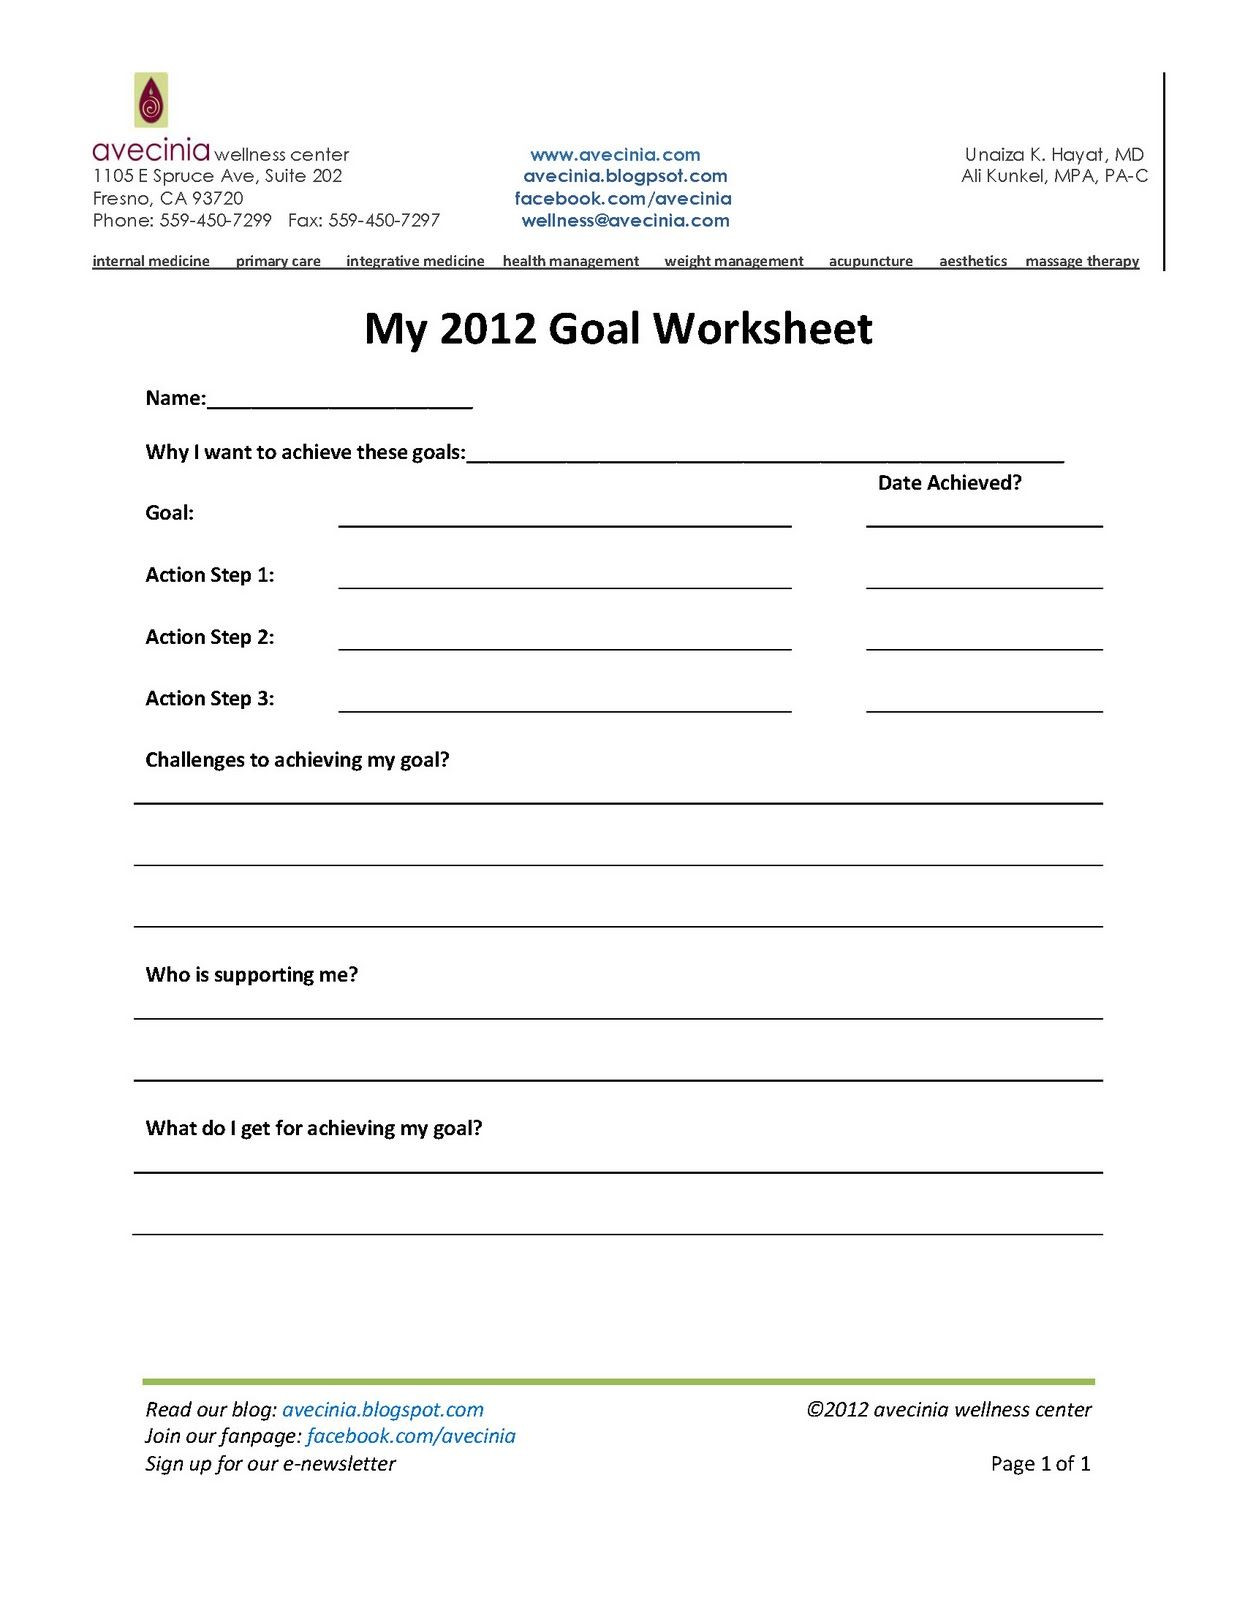 6th Grade Health Worksheets to Charge Health and Wellness Worksheets today It